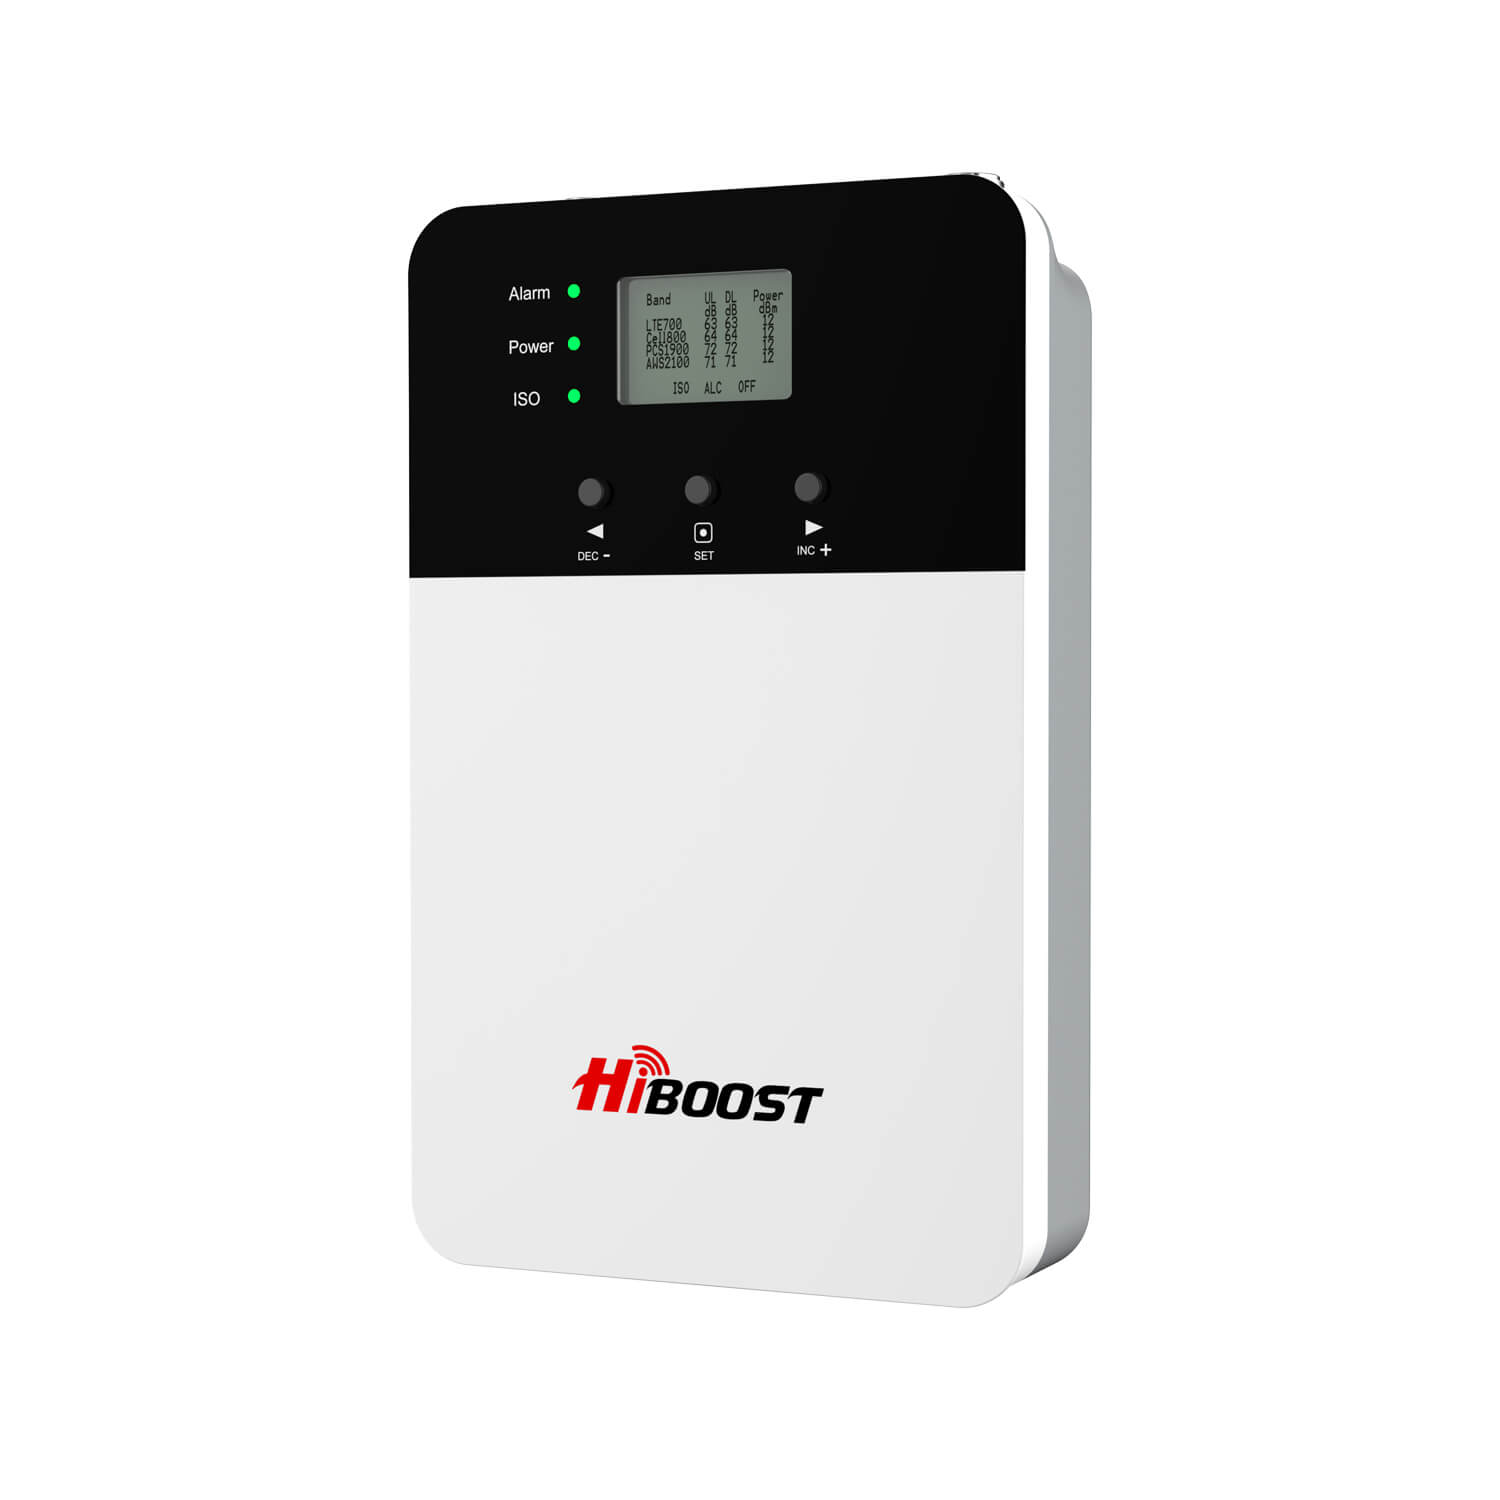 HiBoost Plus Series cell phone signal boosters-front view